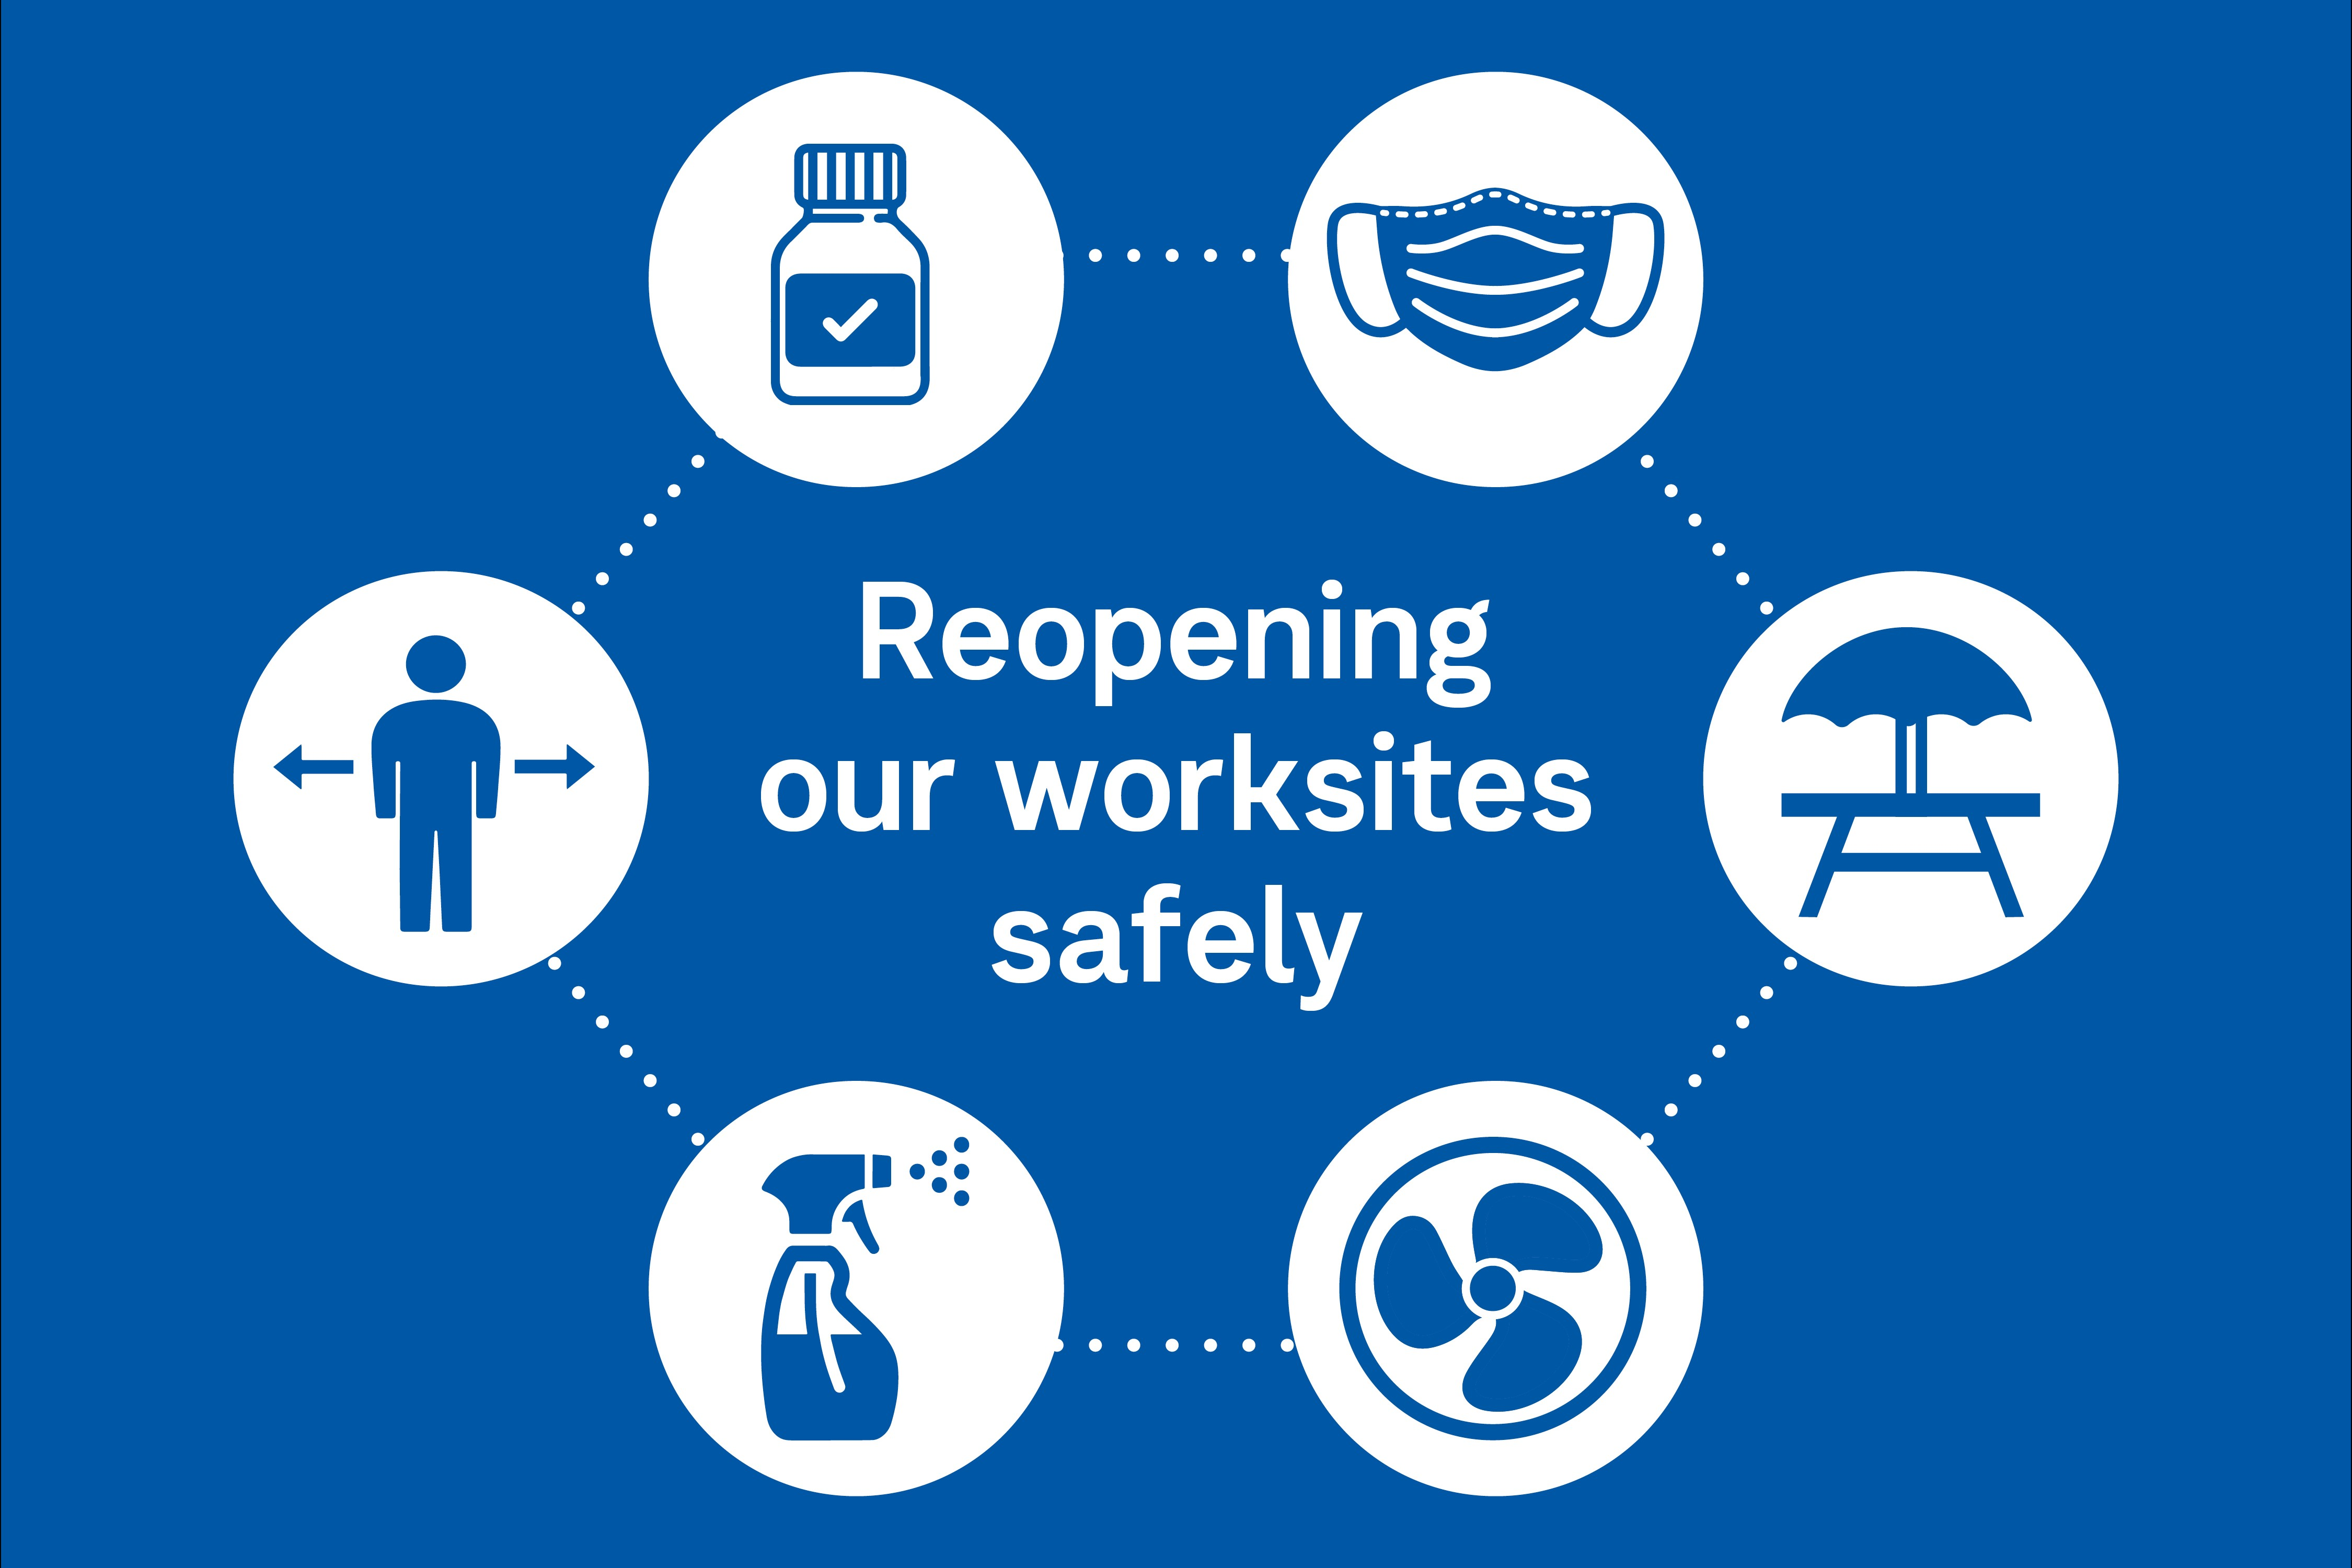 Graphic of PPE and the words 'Reopening our worksites safely